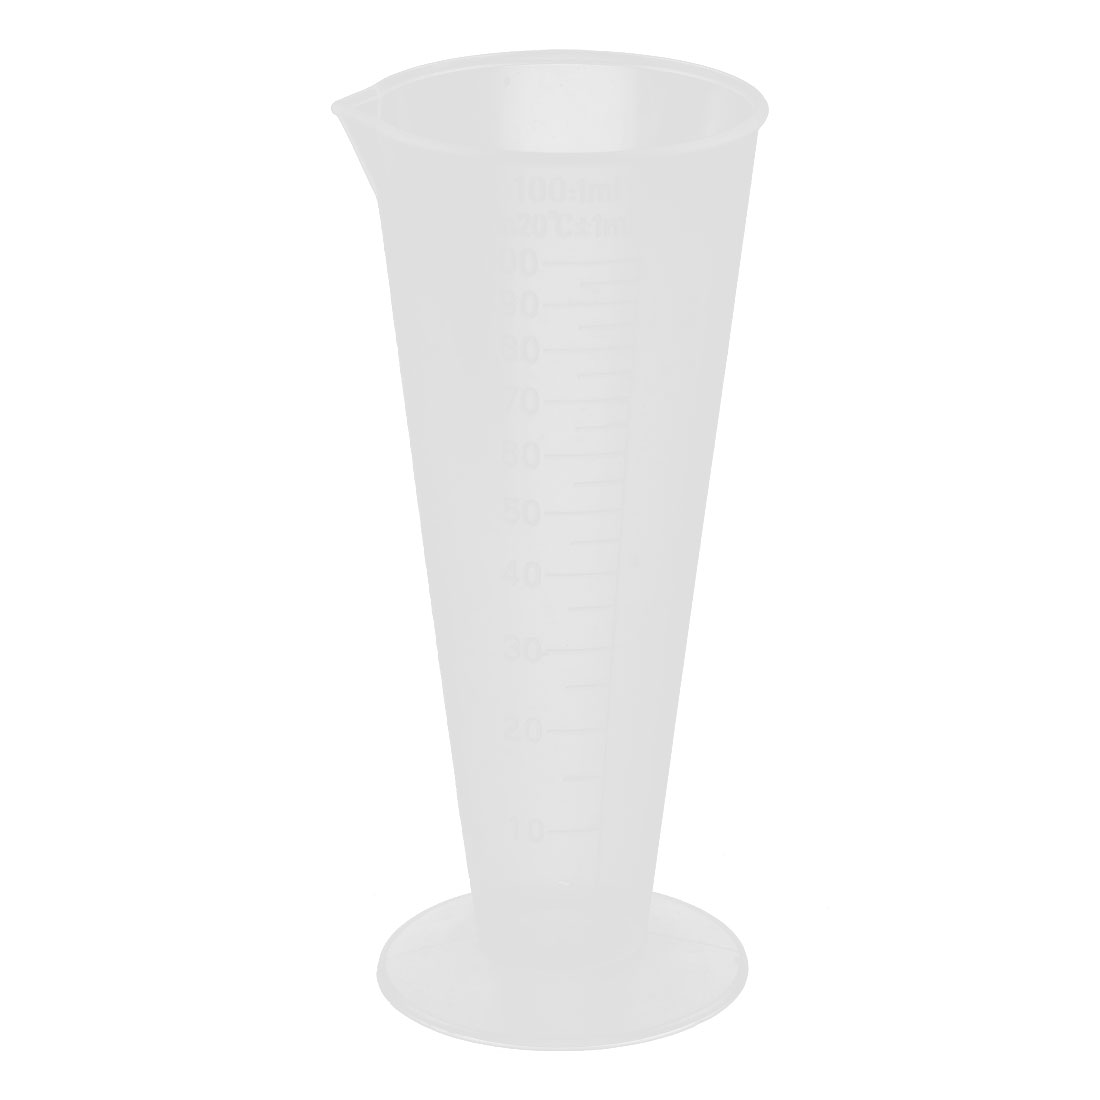 Laboratory Plastic Liquid Graduated Measuring Cup Beaker Clear White 100ml